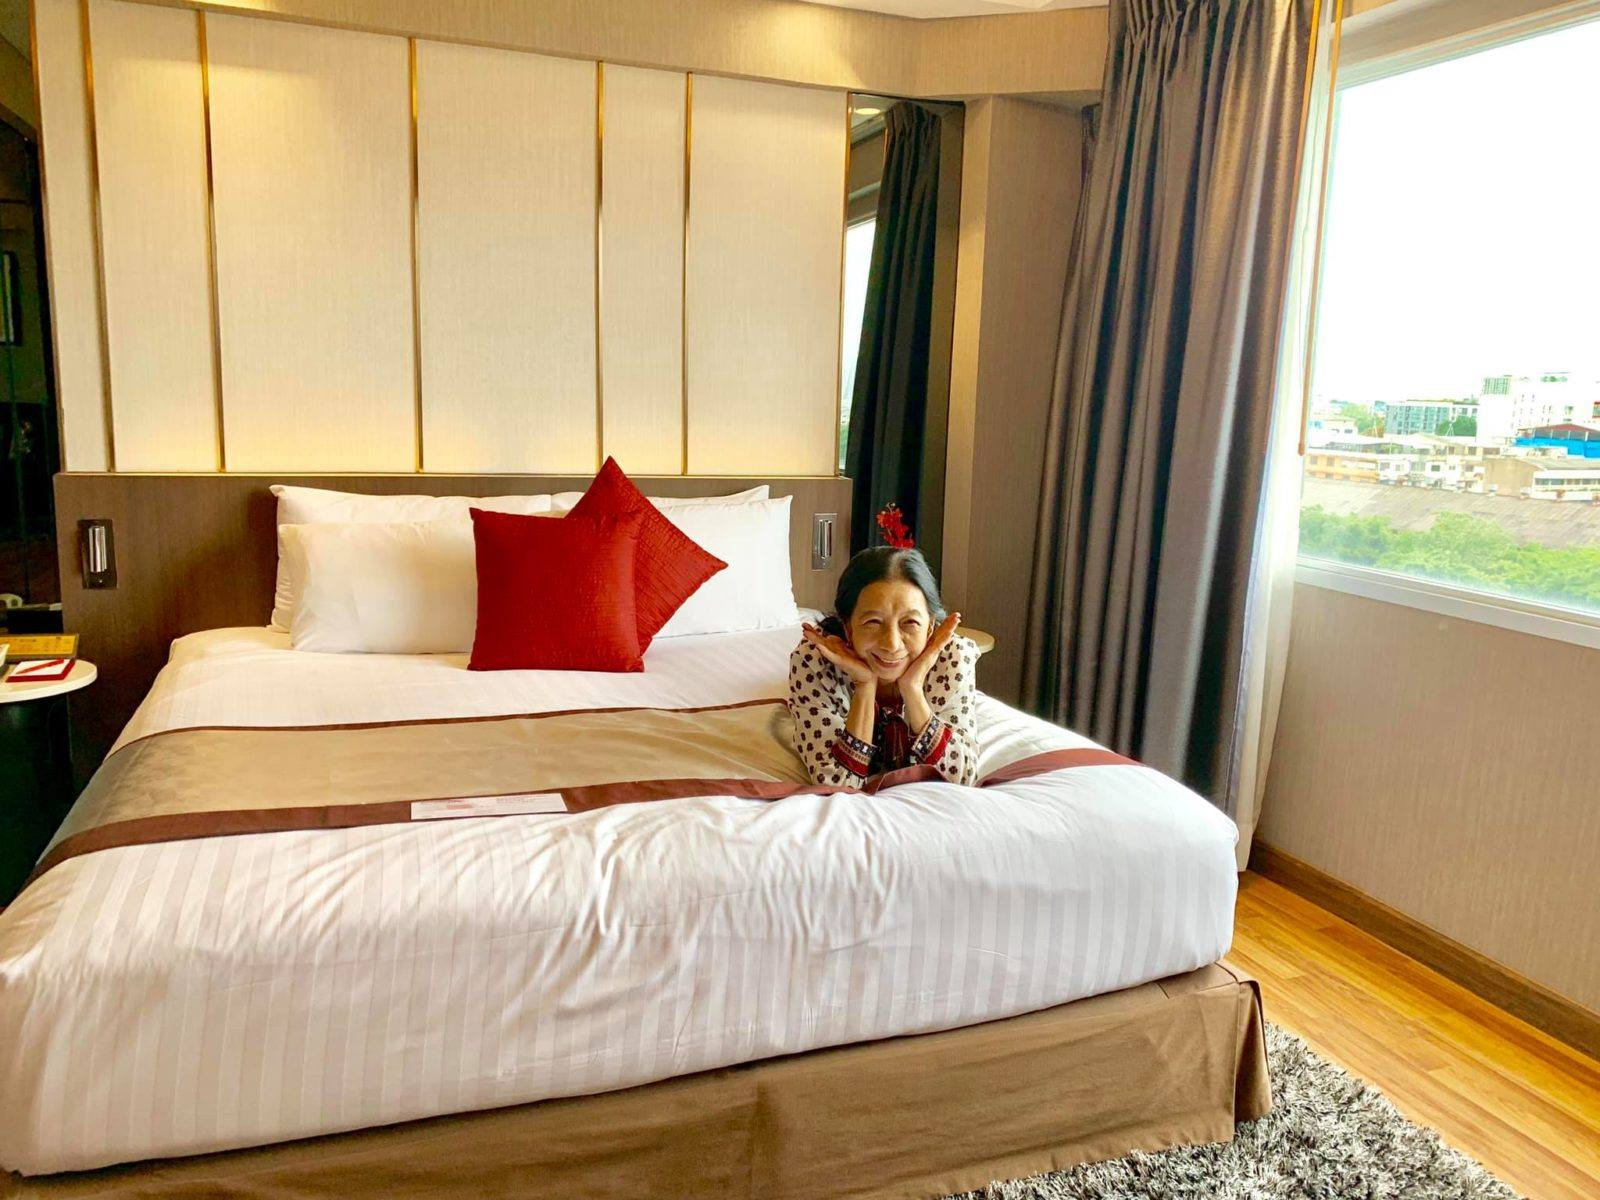 Our Luxurious Staycation At Ramada Plaza In Bangkok And Our Tour With Tinggly Experiences22